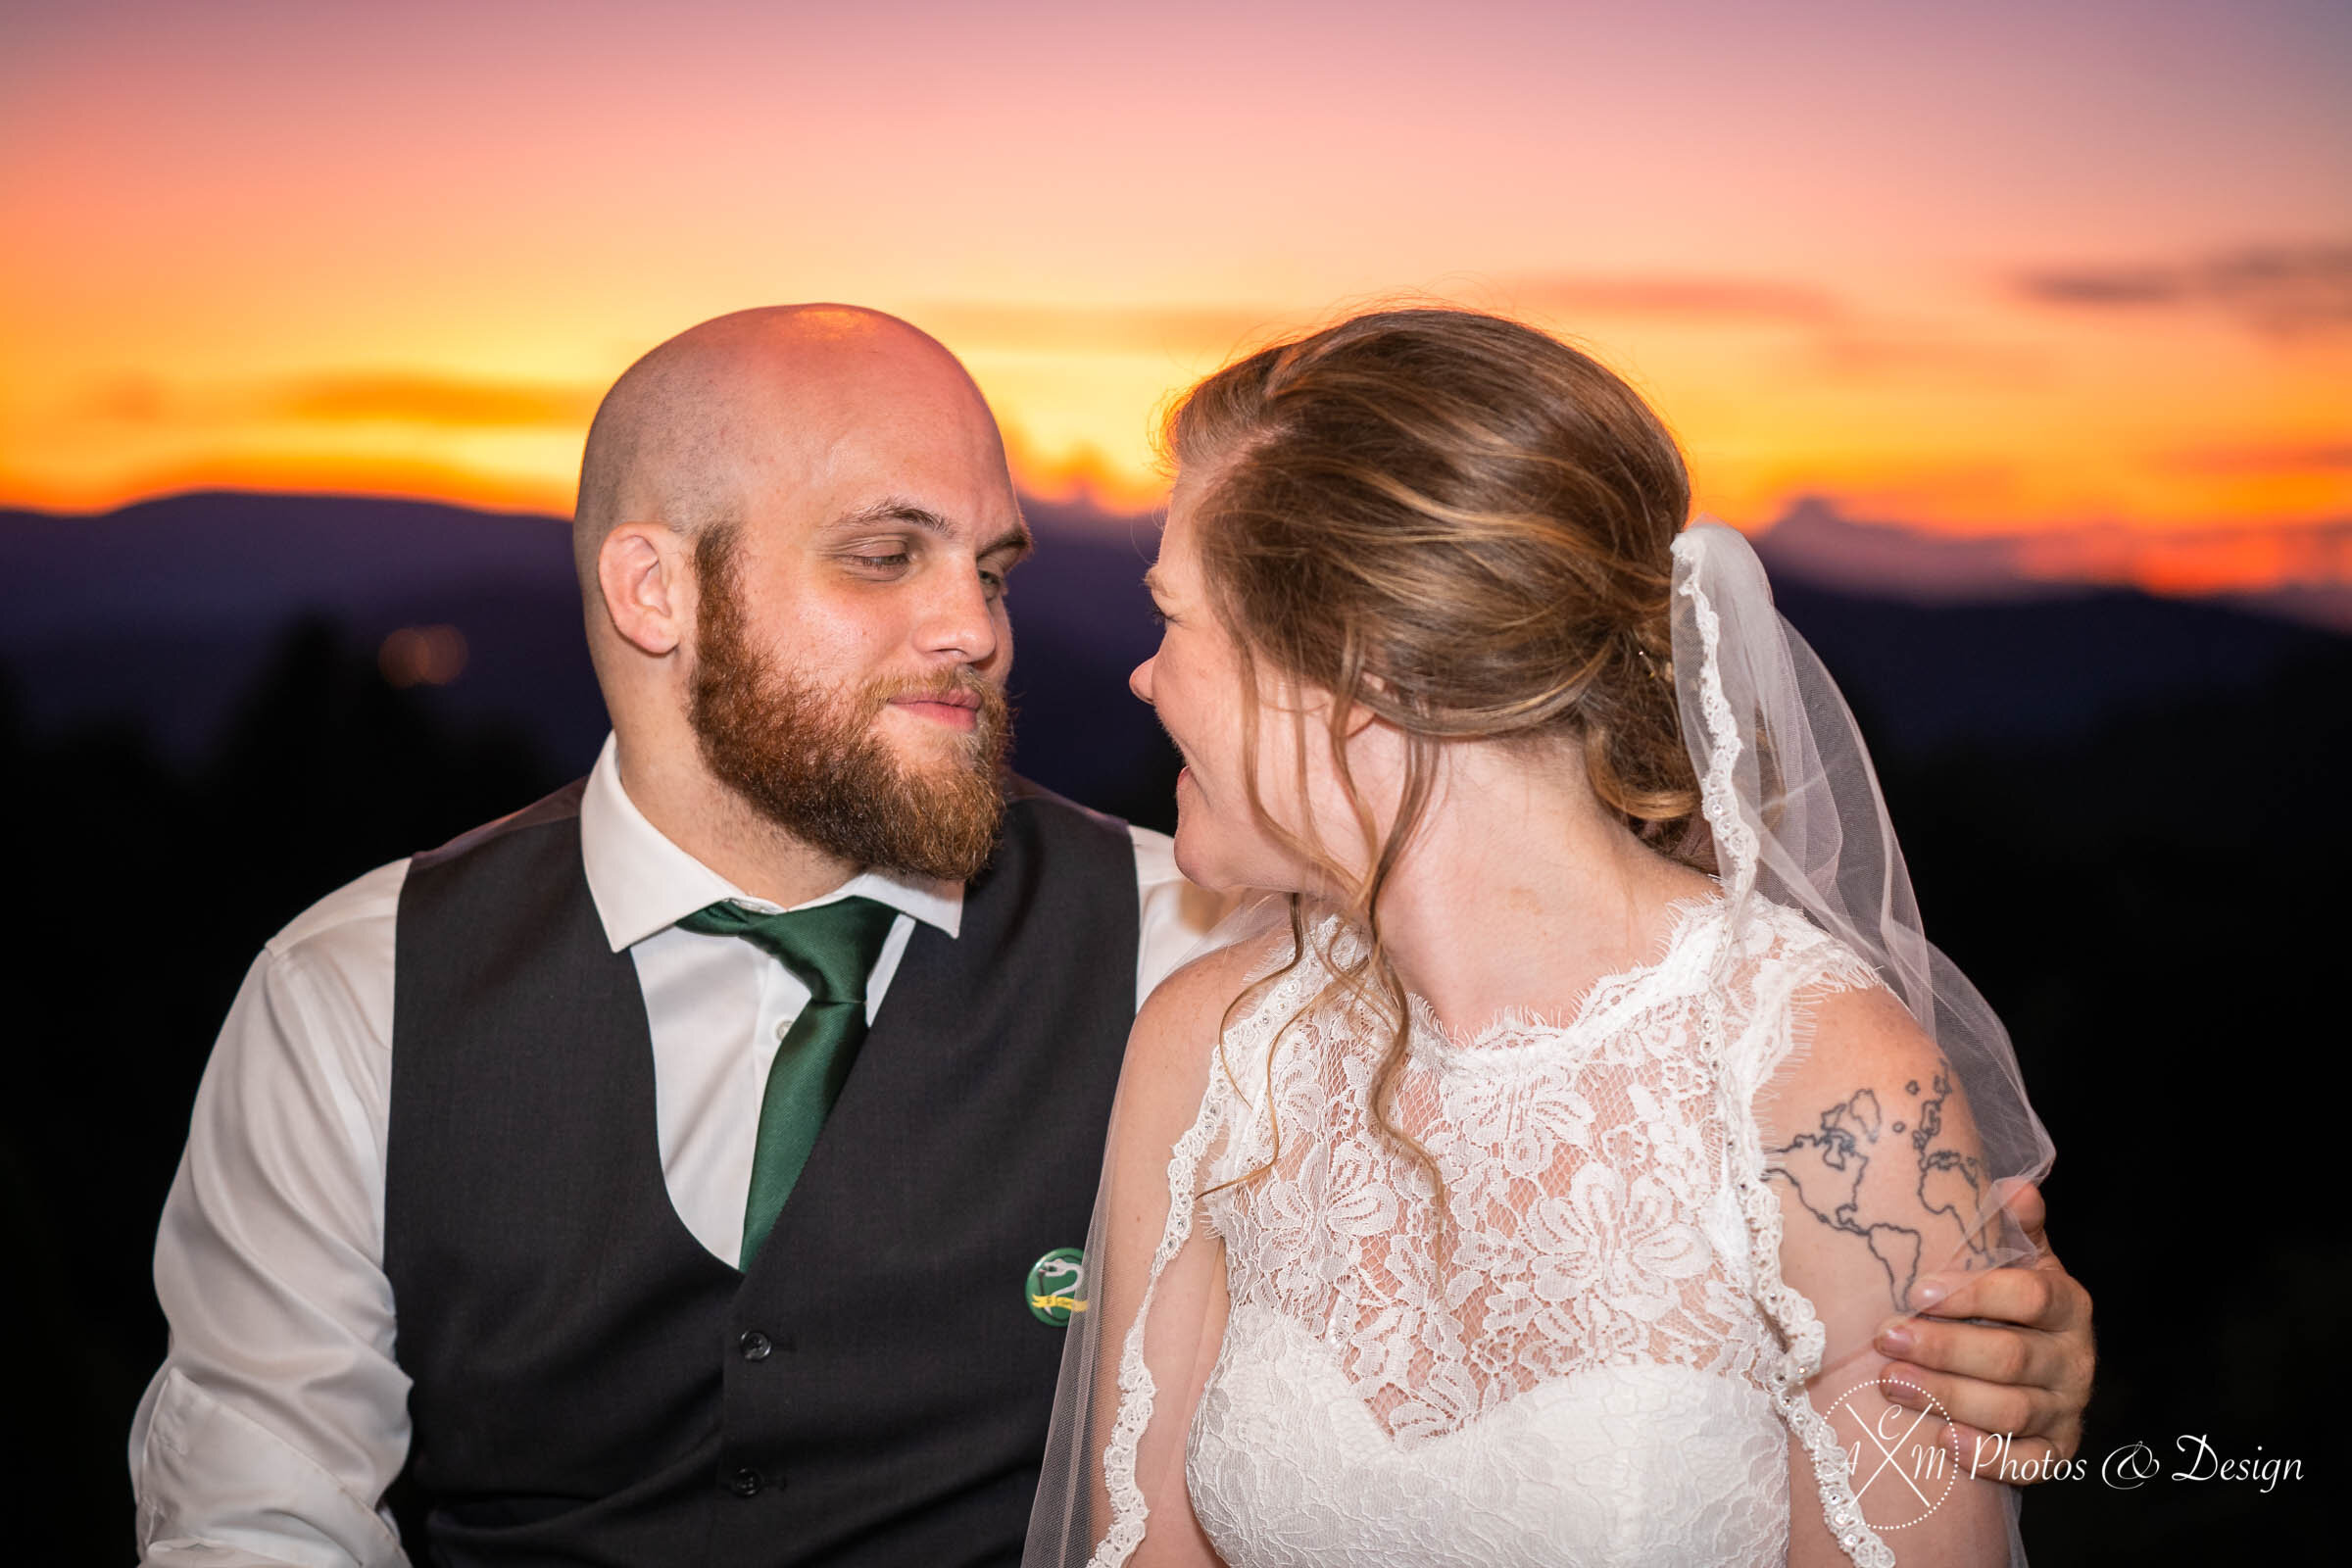 Being able to document that sunset over the mountains and properly expose the bride and groom was very important to us. We grabbed a strobe and captured the bride and groom sitting down and having a moment together after cutting the cake.